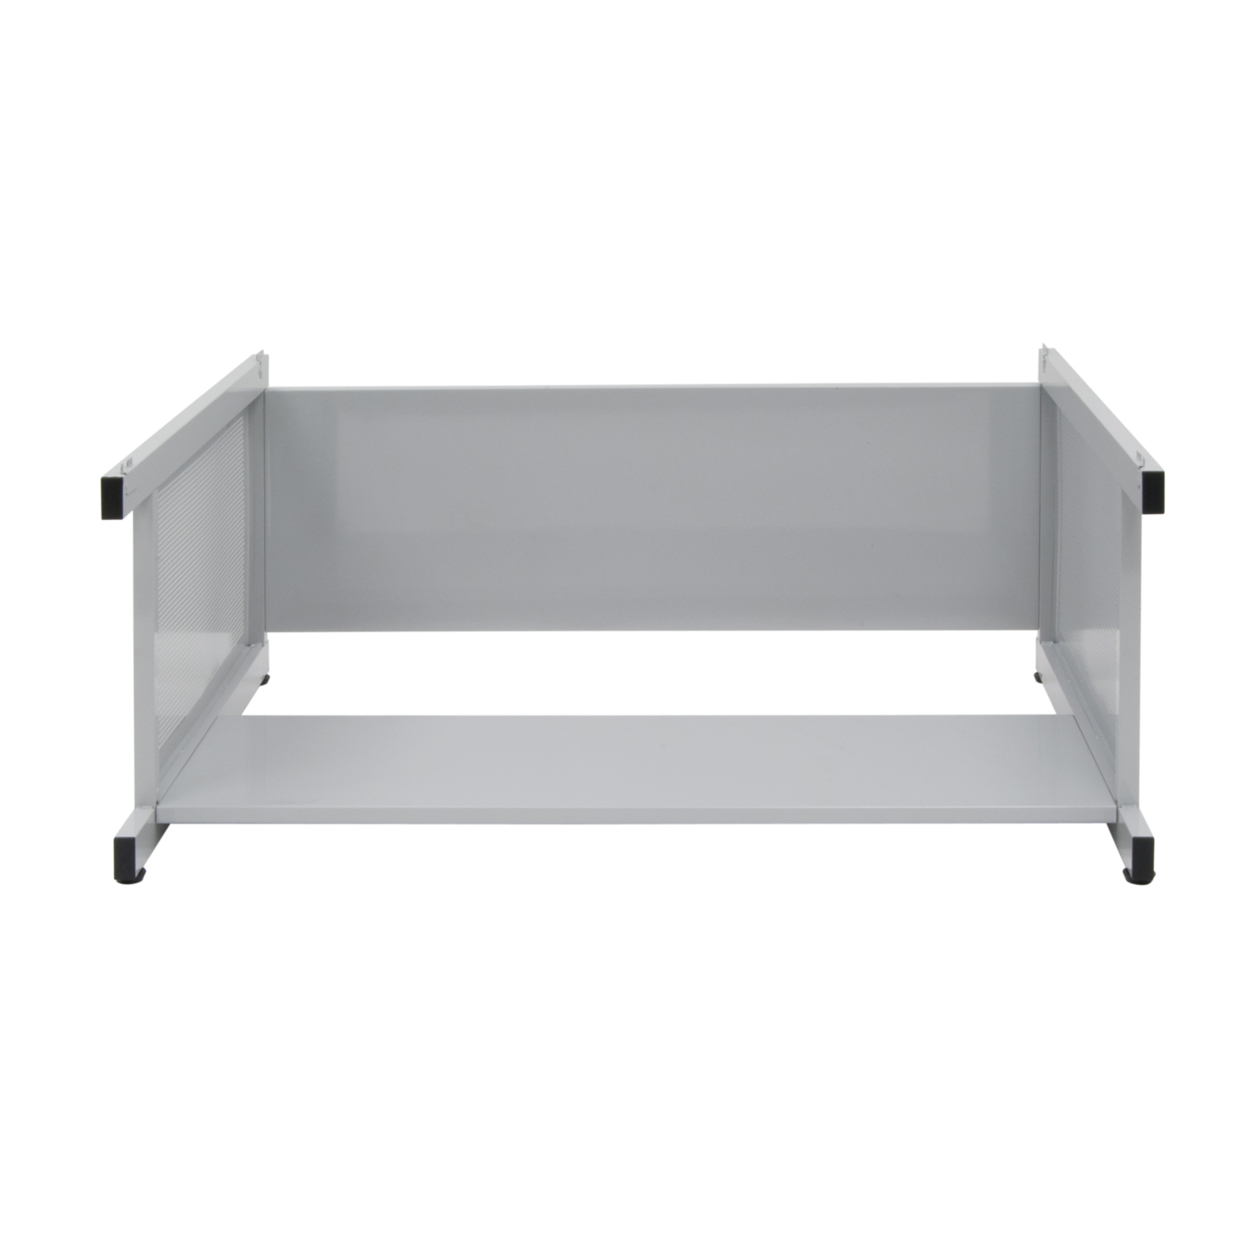 Offex Home Office Flat File 40 Stand - Grey offex home office plinth ottoman latte